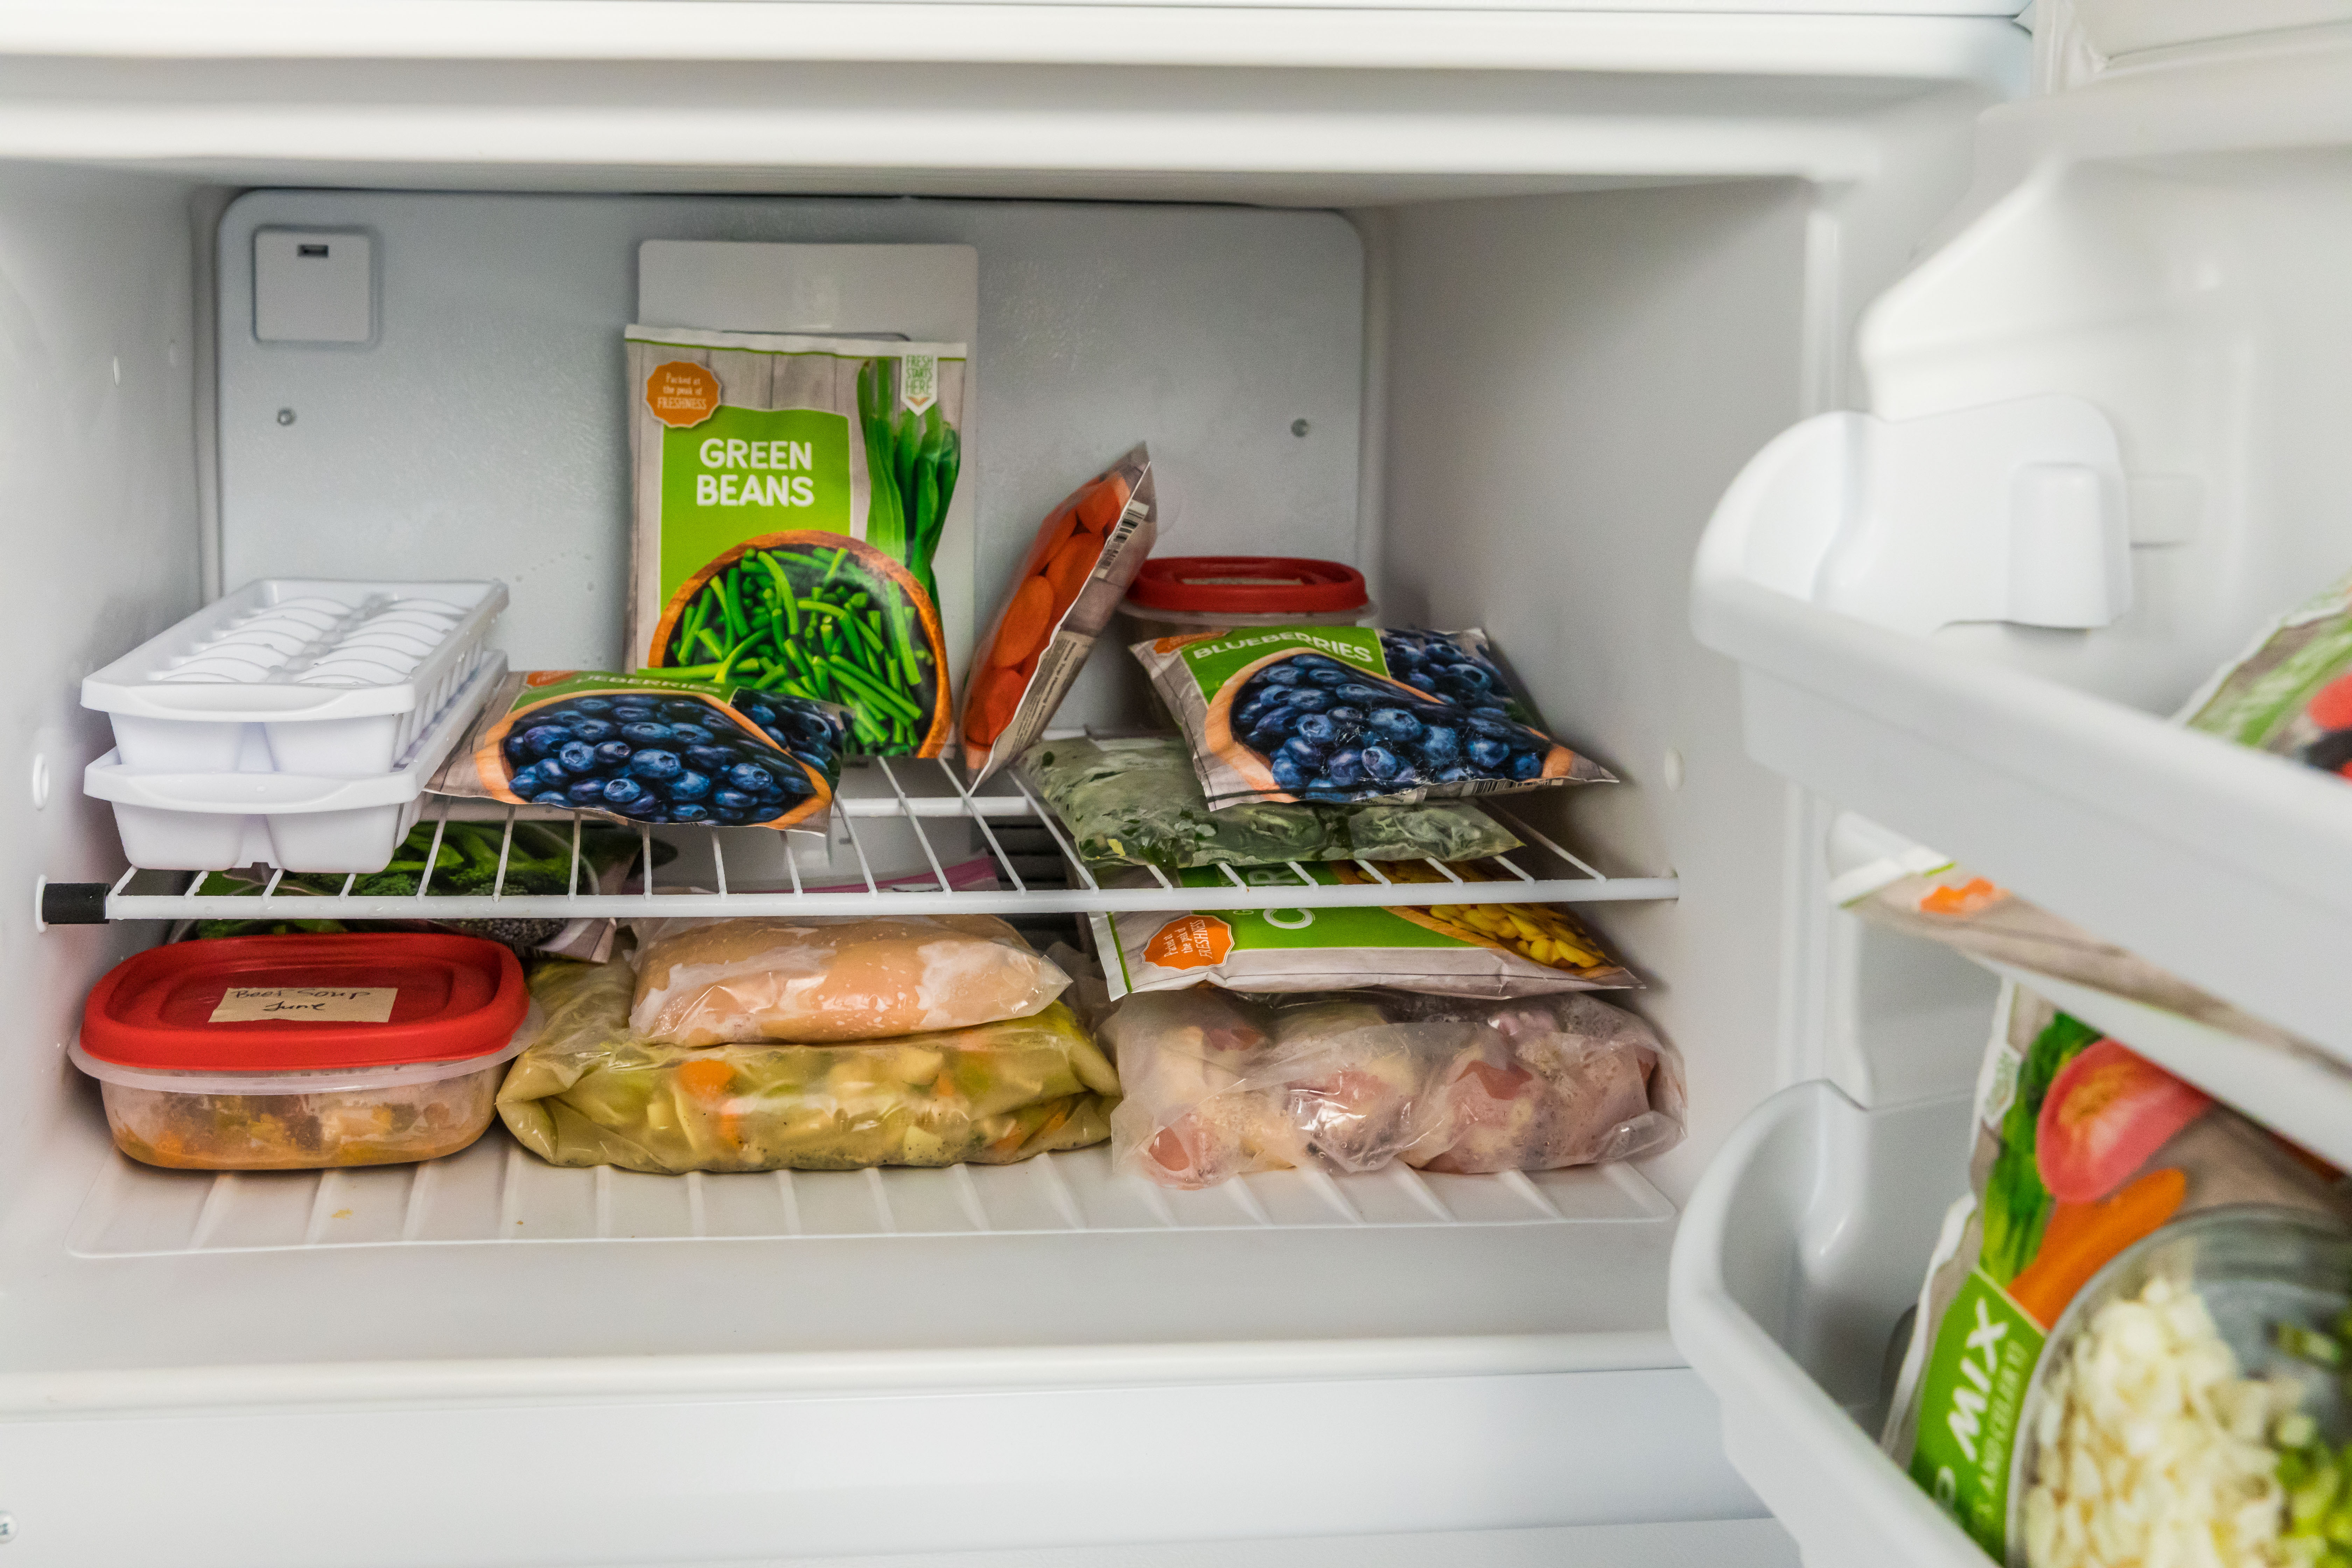 Food placed in containers in freezer with other pre-packaged frozen food items.